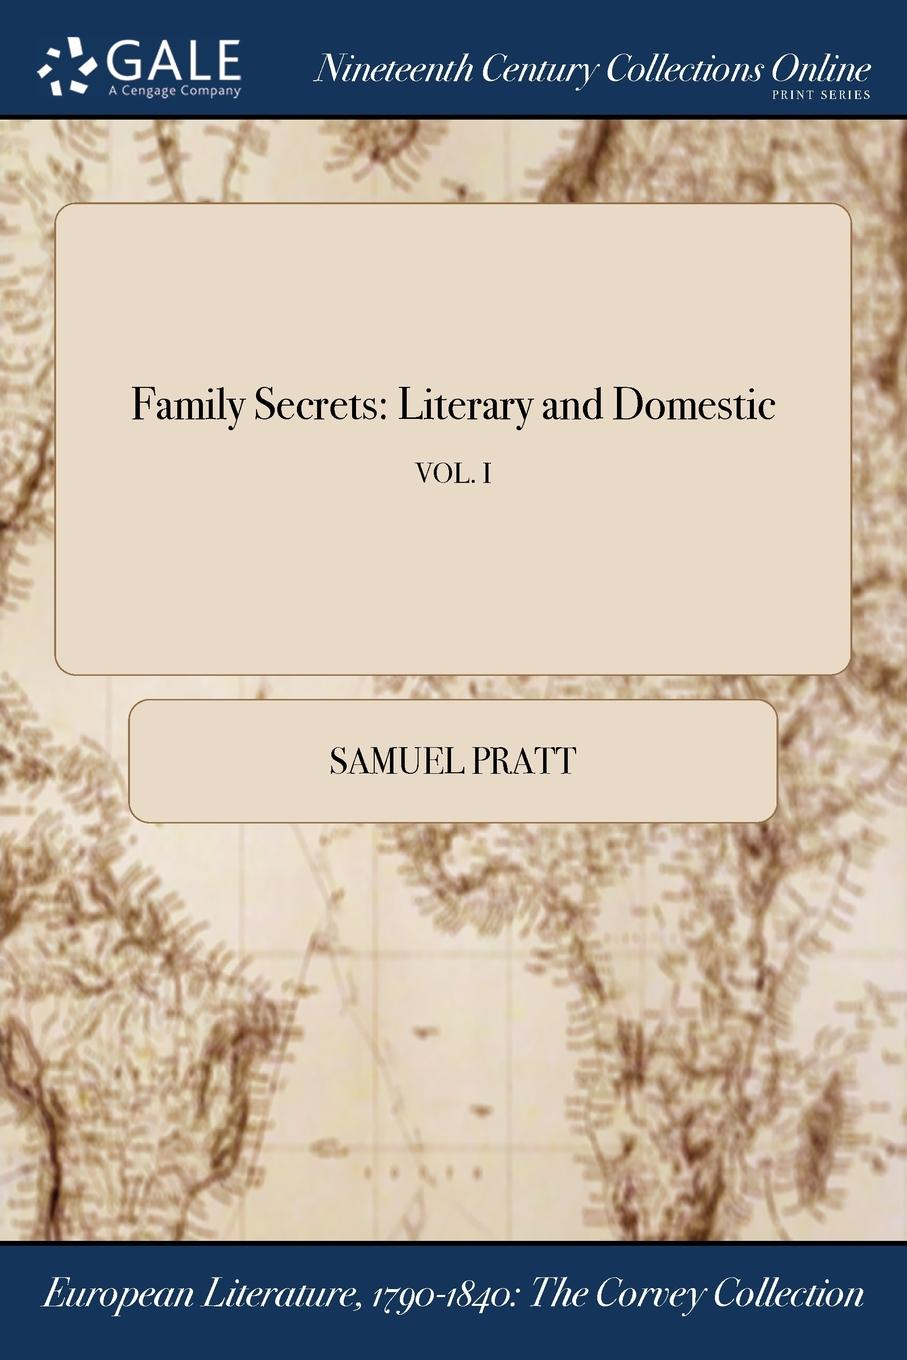 Samuel Pratt Family Secrets. Literary and Domestic; VOL. I